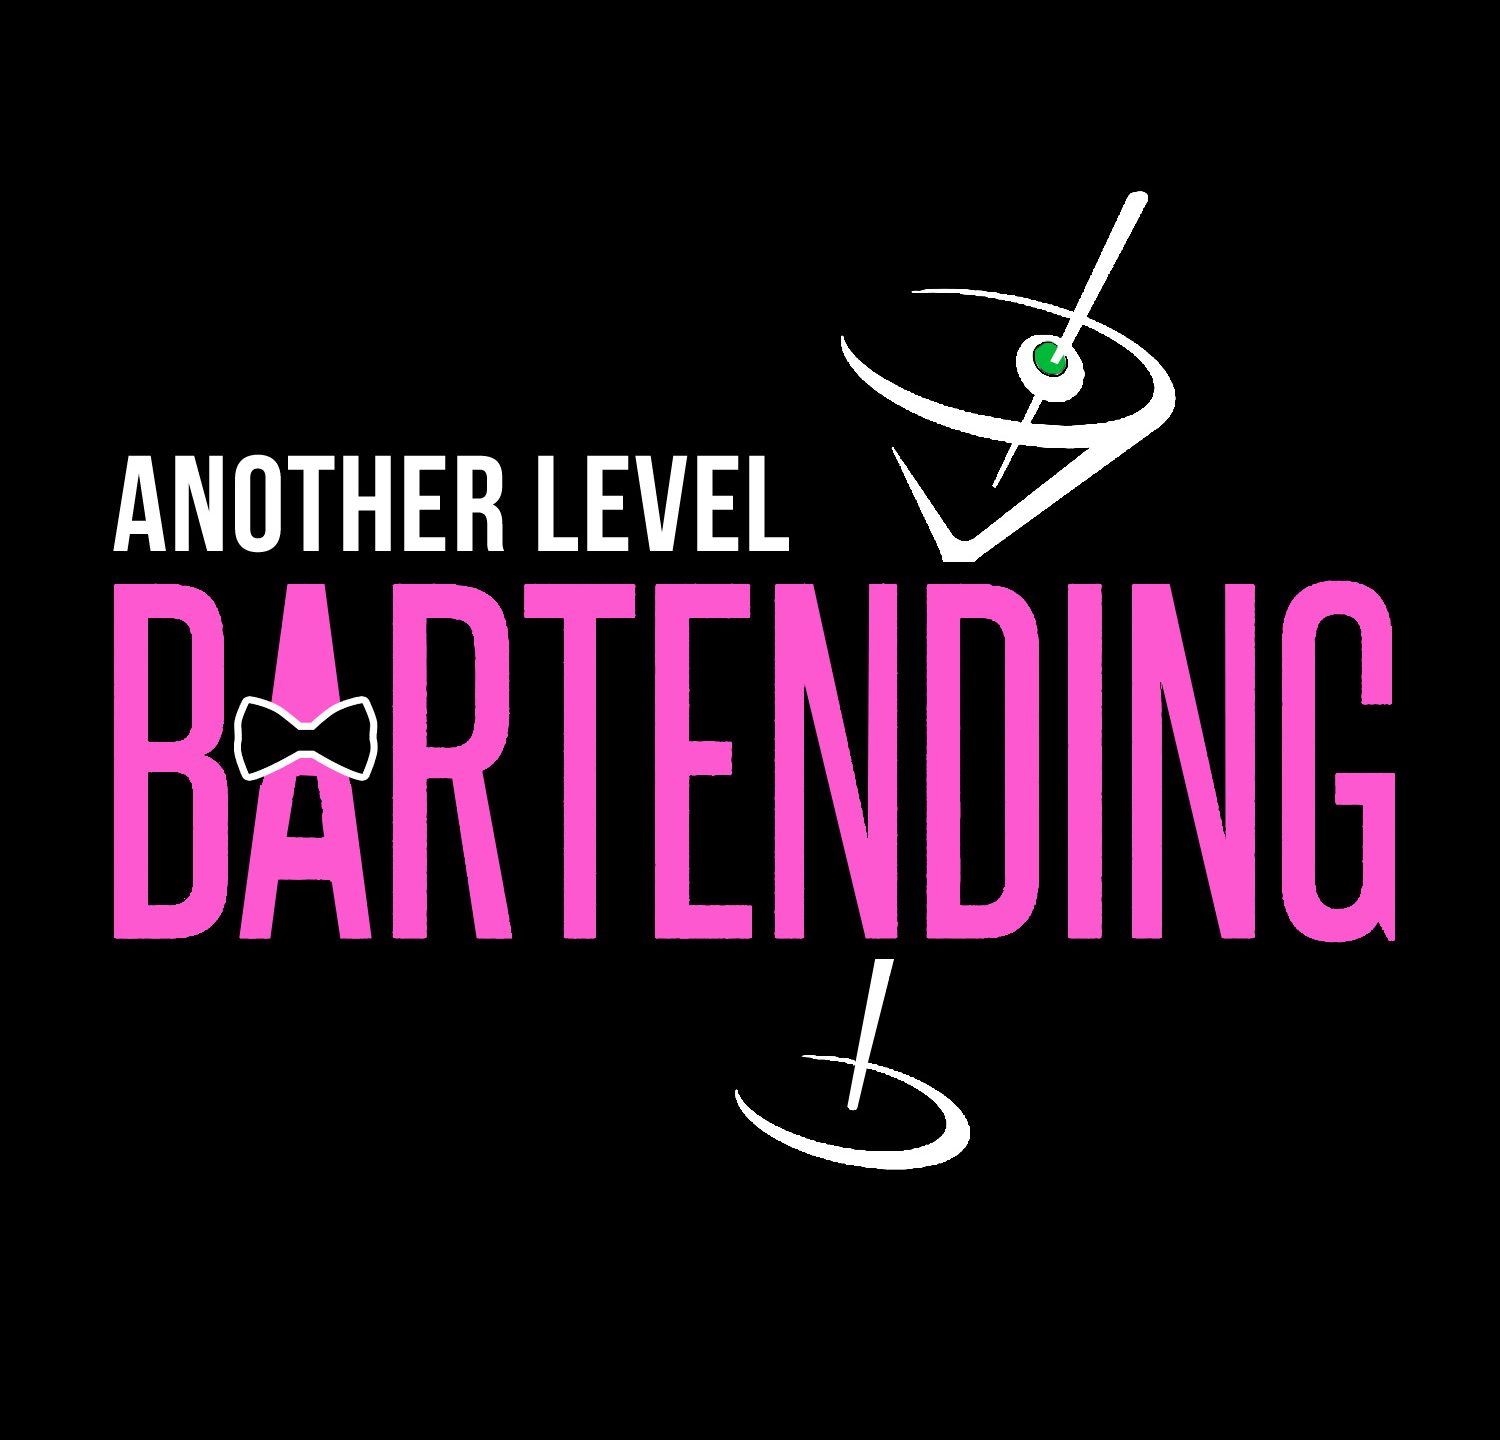 Another Level Bartending Service, LLC.